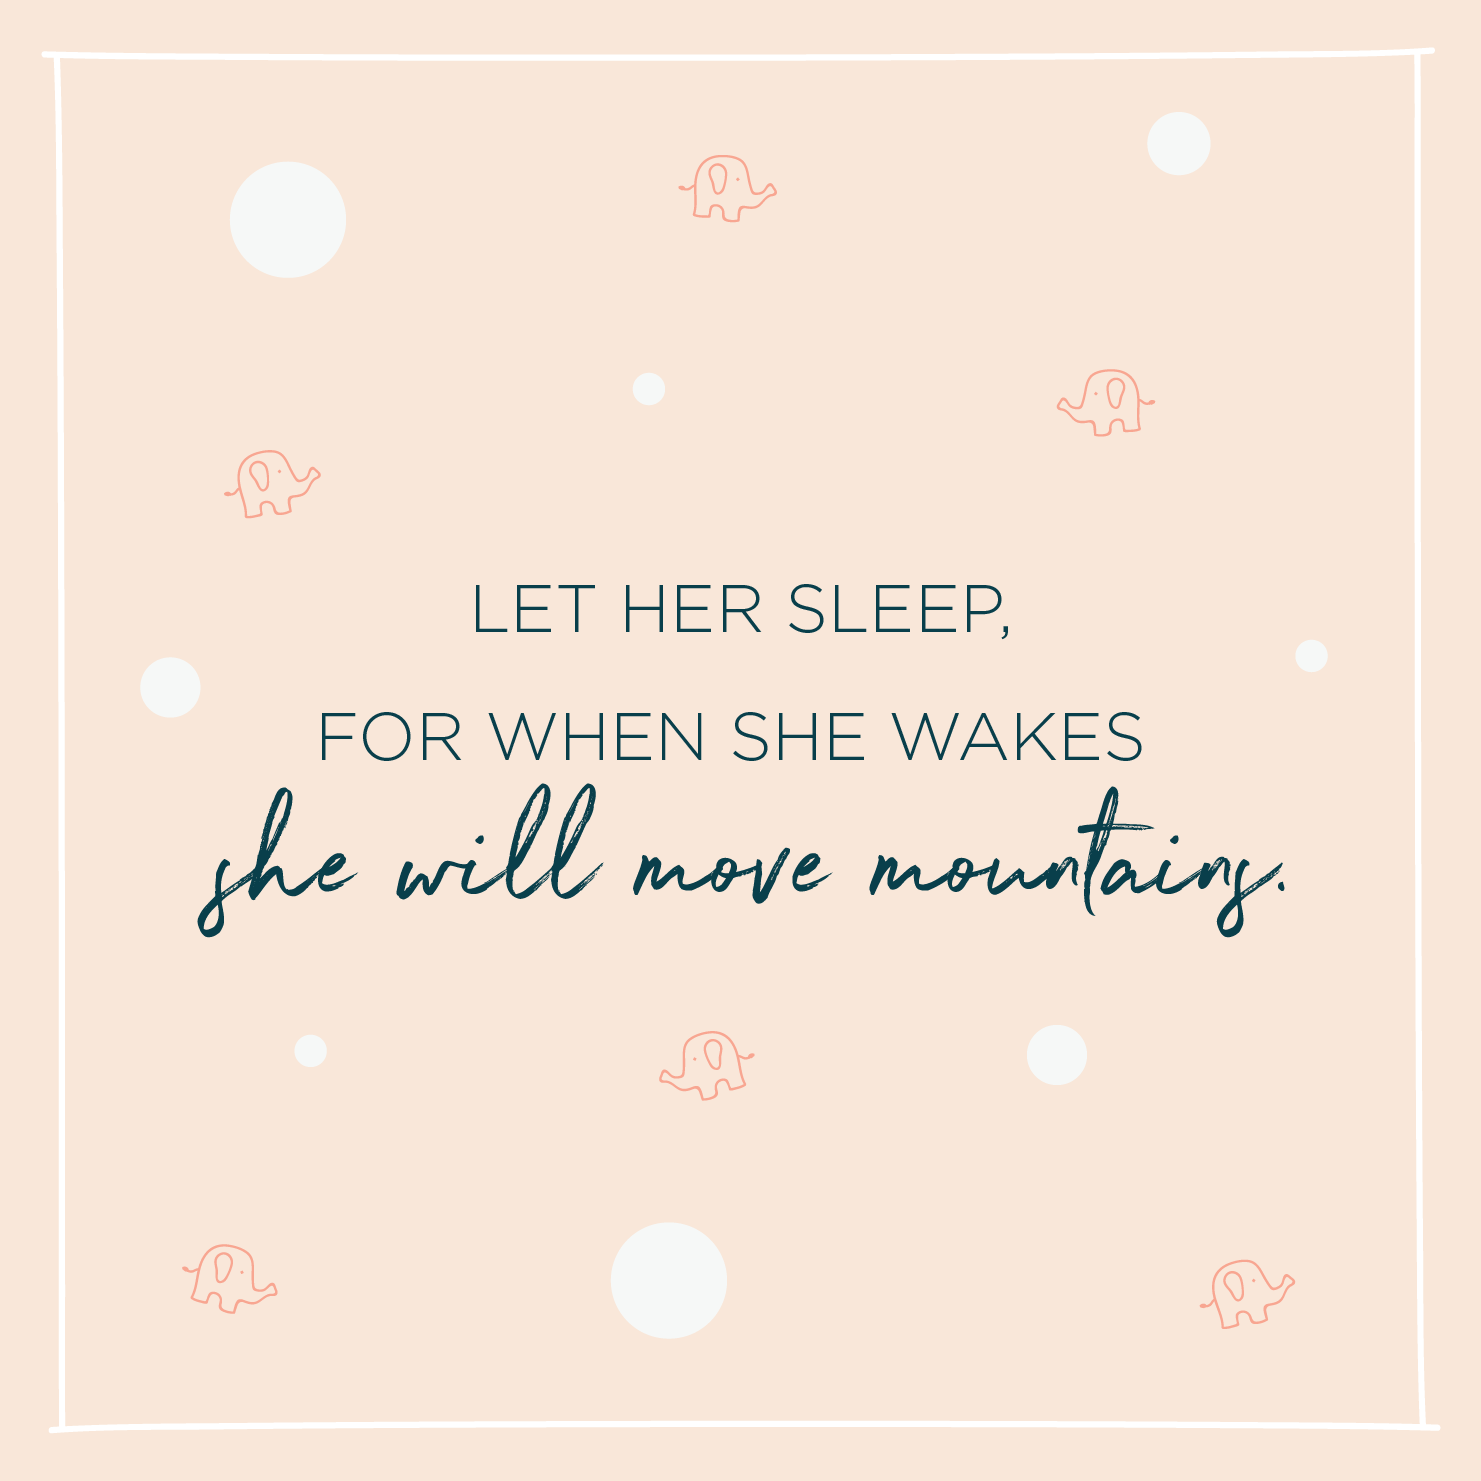 Quote above background image: 'Let her sleep, for when she wakes she will move mountains. '